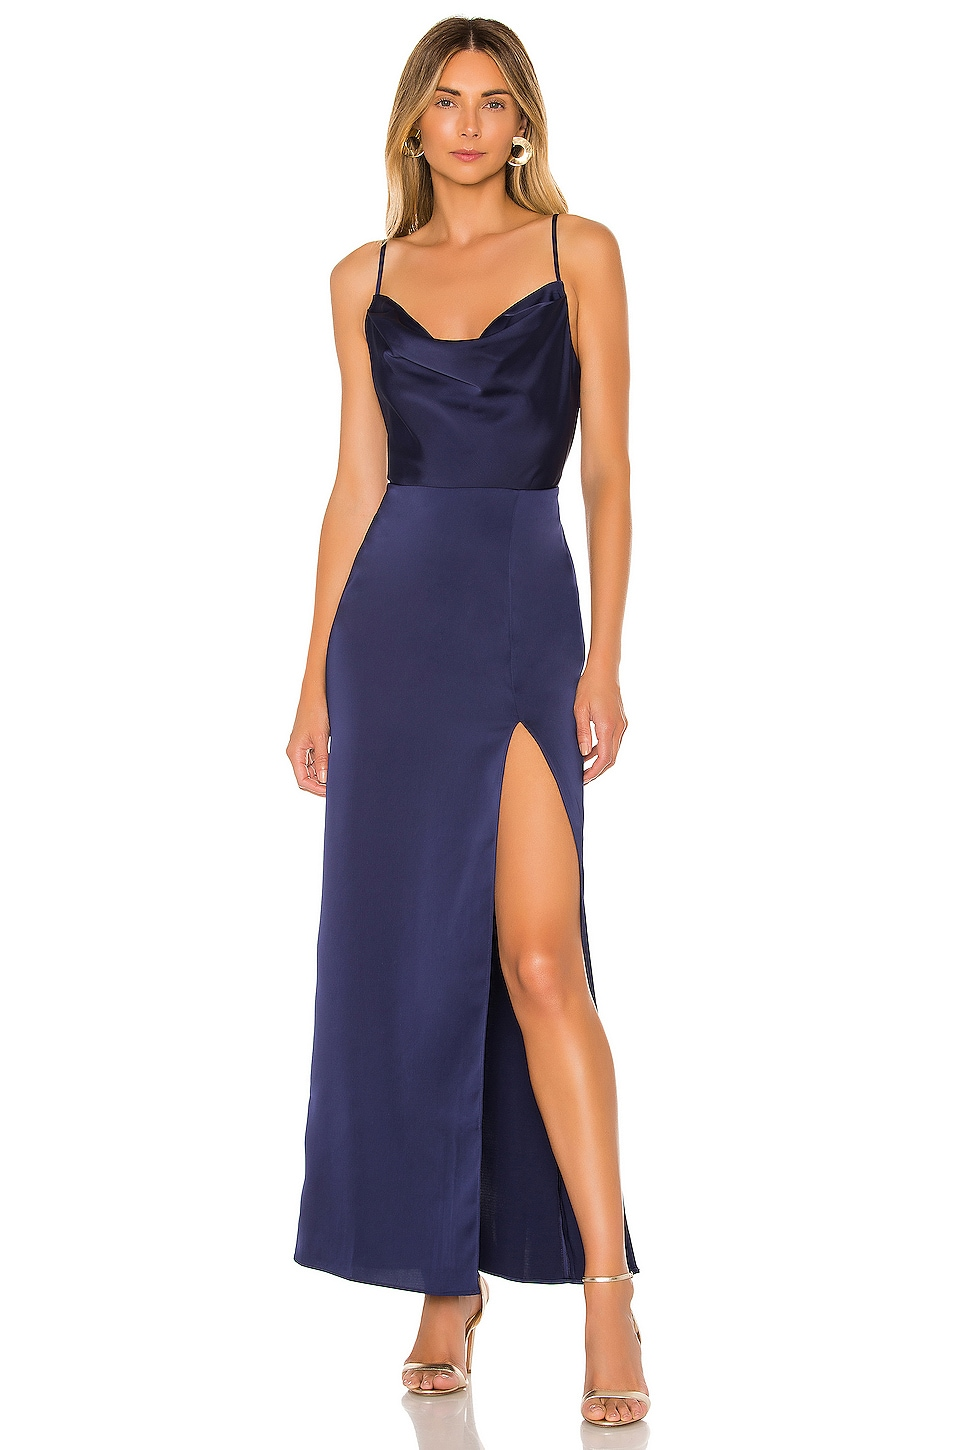 Lila Gown                   NBD                                                                                                                             CA$ 298.17 1